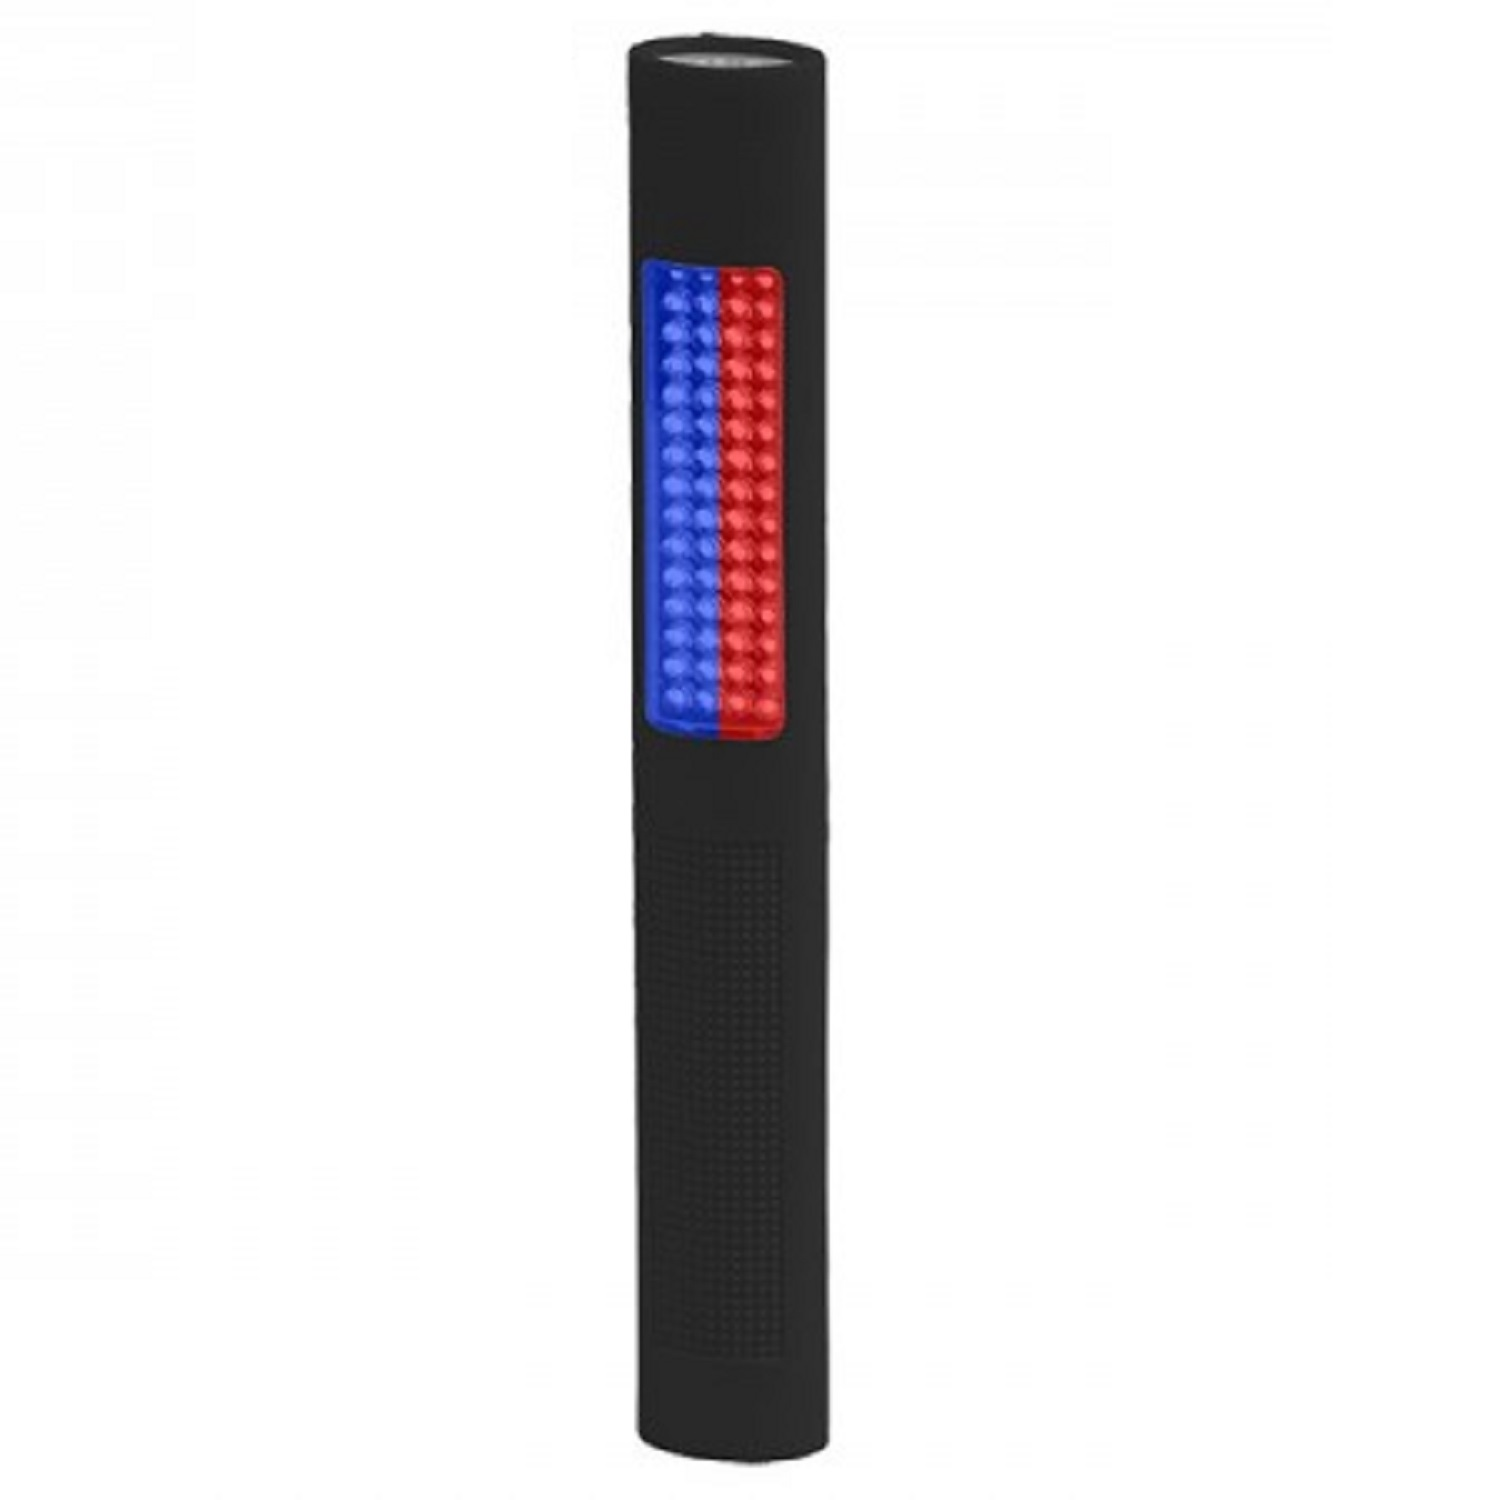 NightStick LED Safety Light Alternat RedBlue Floodlight White Flashlight Black Soft Touch